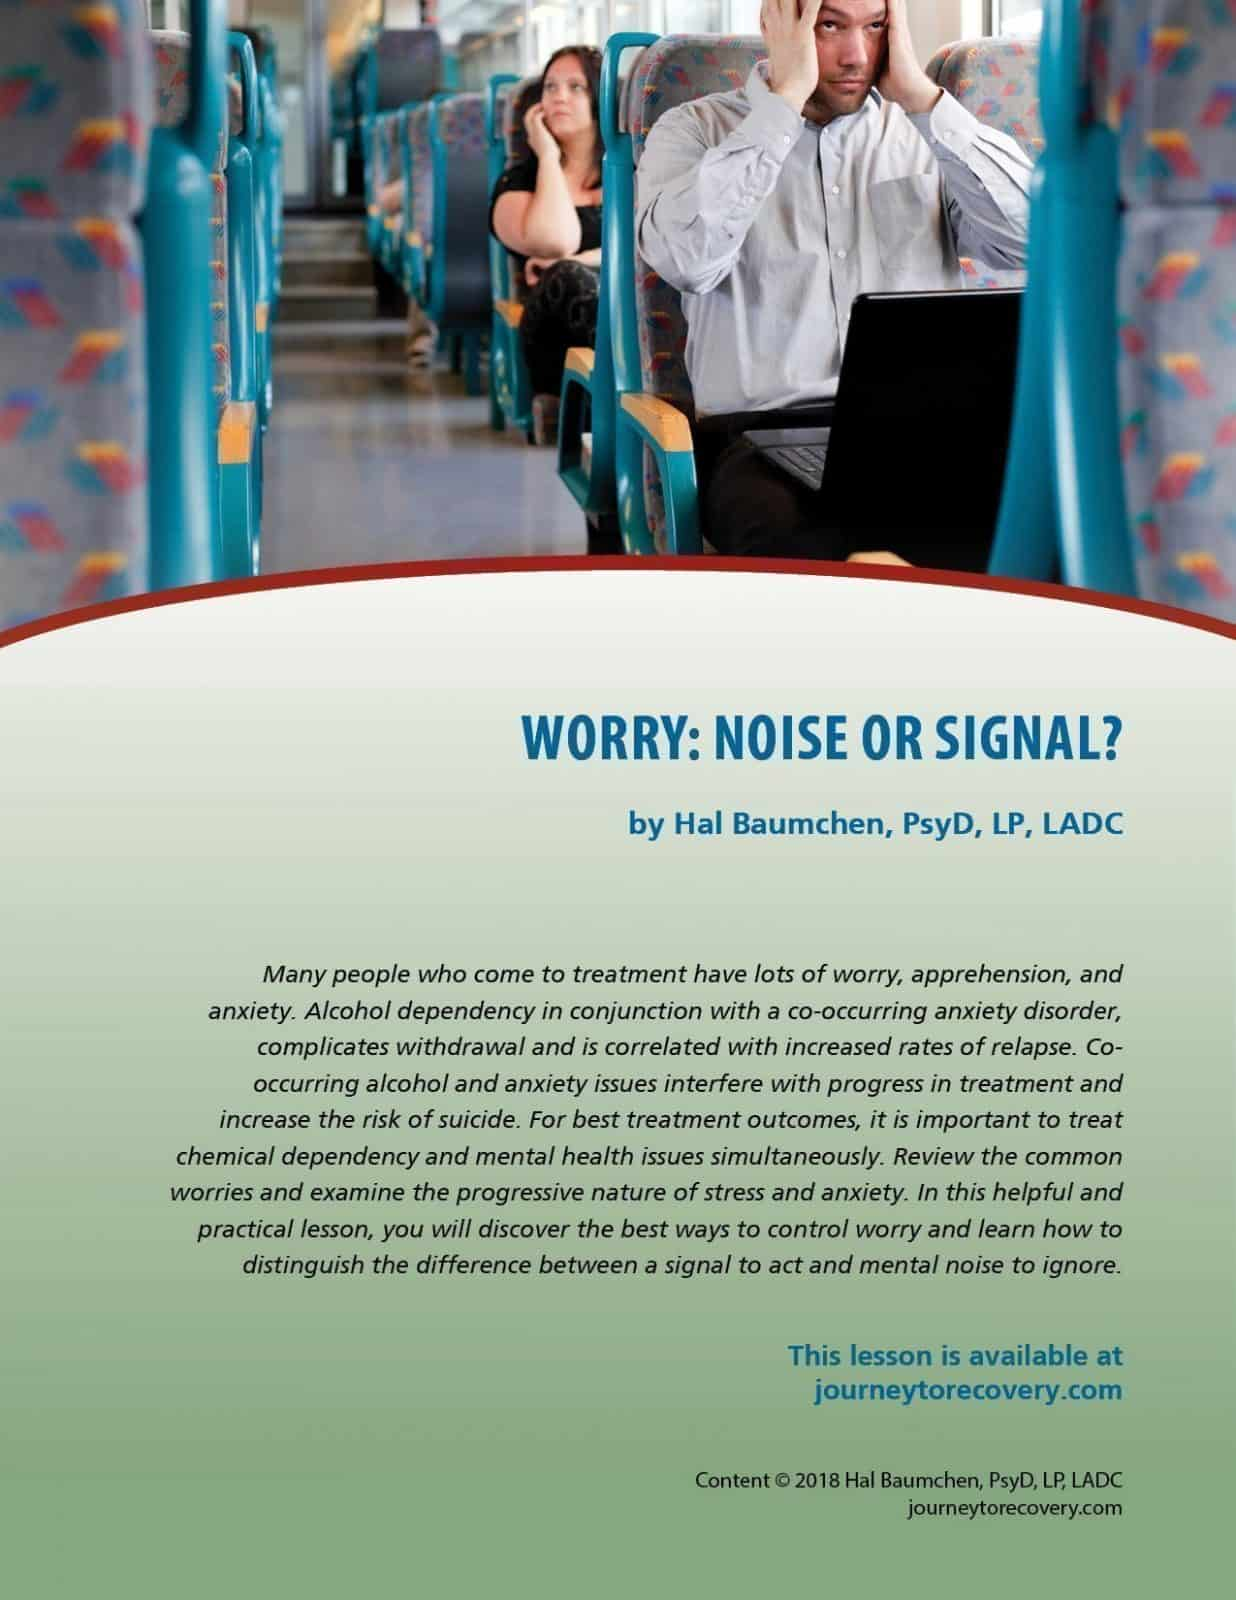 Worry: Noise or Signal? (COD Lesson)